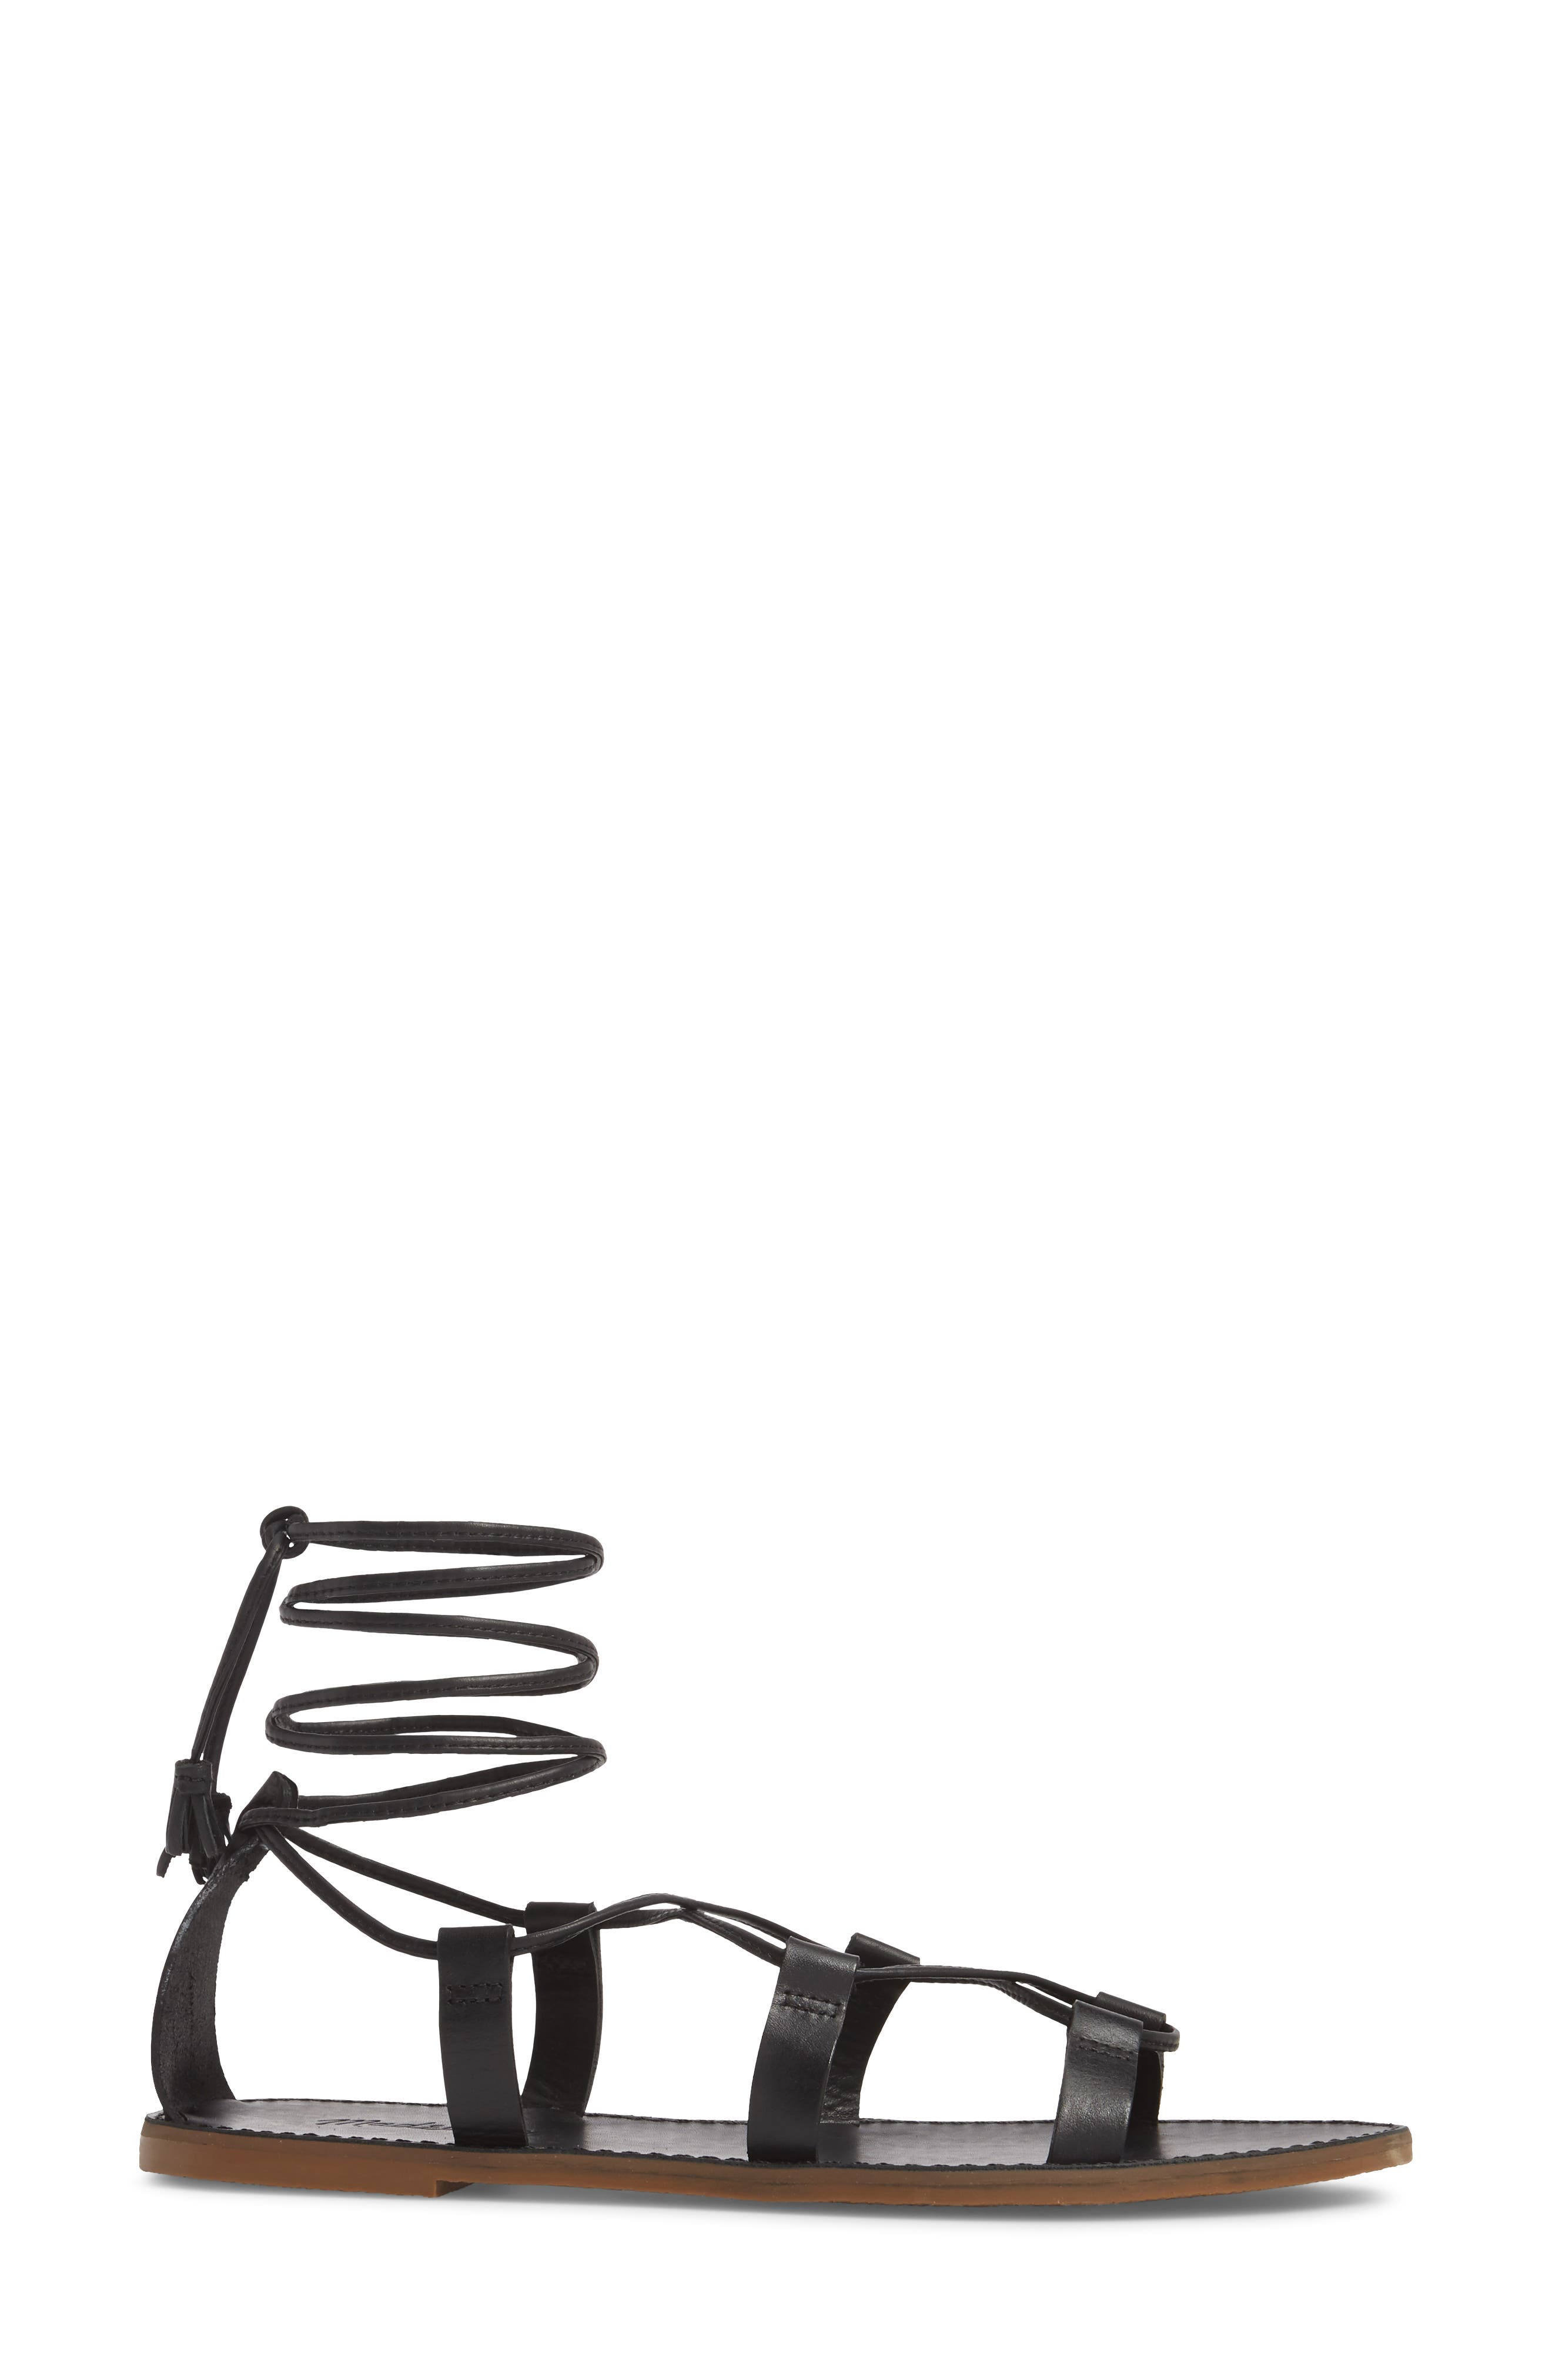 MADEWELL, The Boardwalk Lace-Up Sandal, Alternate thumbnail 3, color, 001